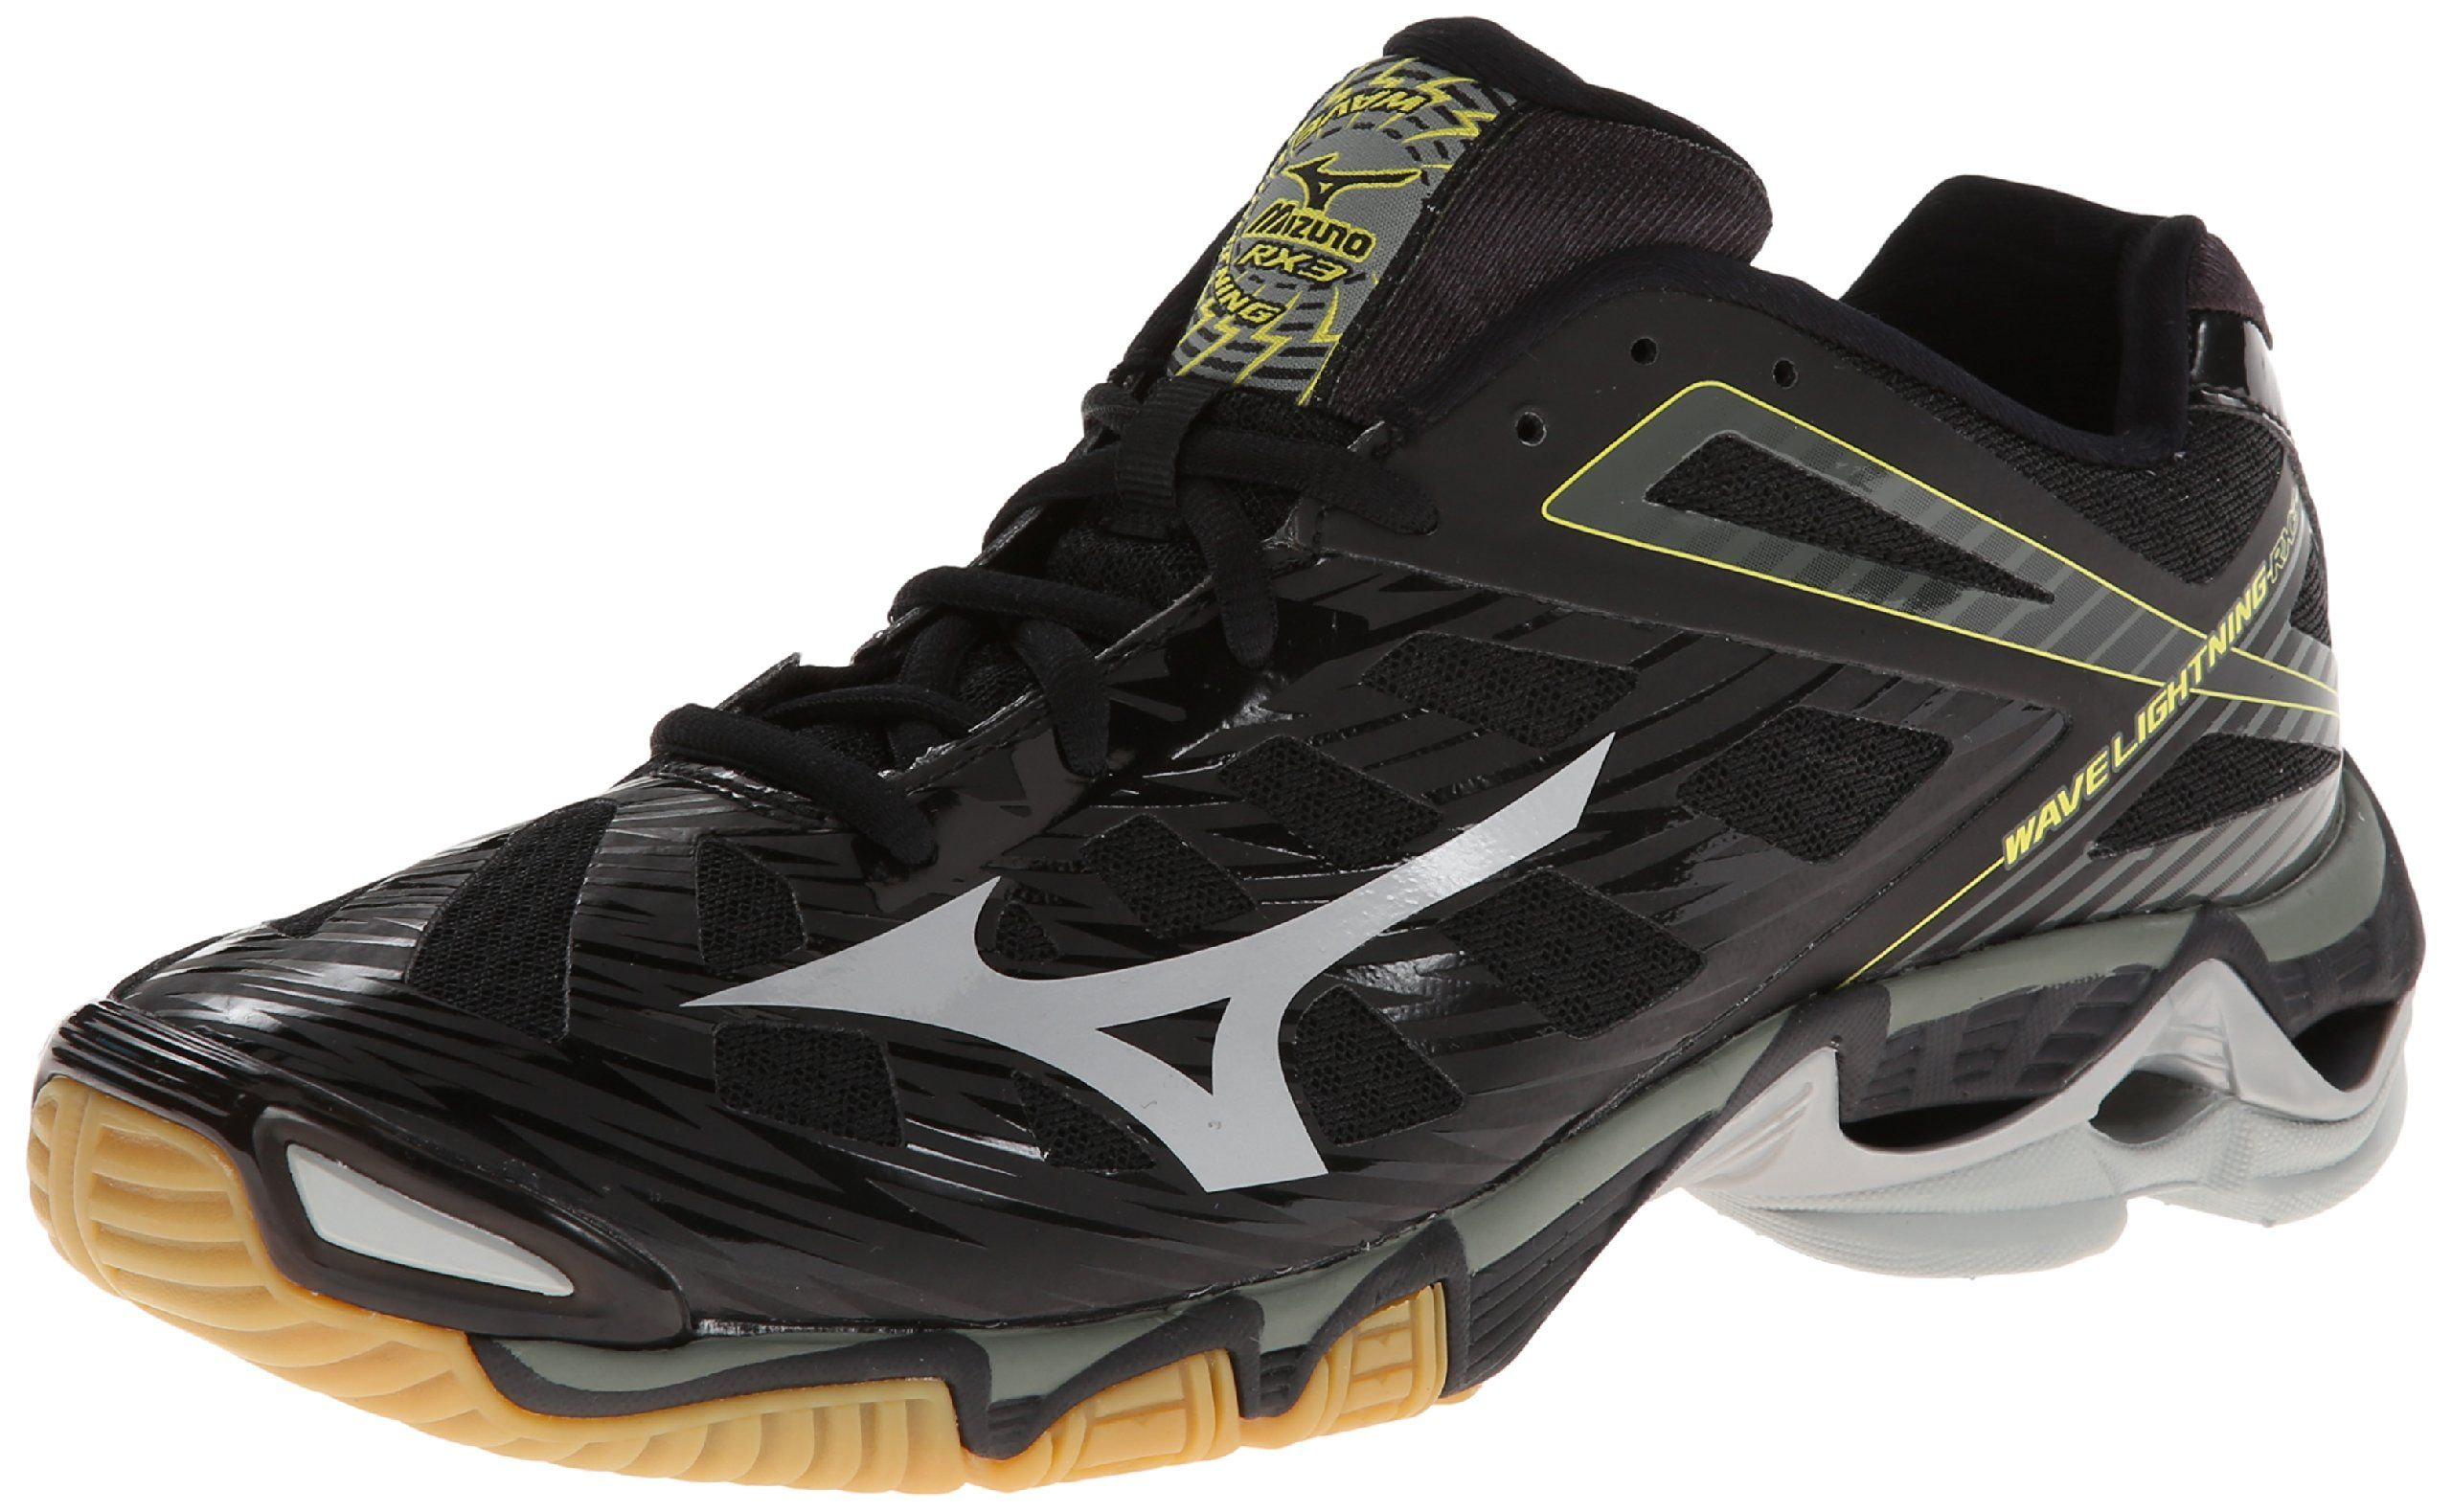 Mizuno Men S Wave Lightning Rx3 Volleyball Shoe Black Silver 7 M Us Volleyball Shoes Mens Volleyball Shoes